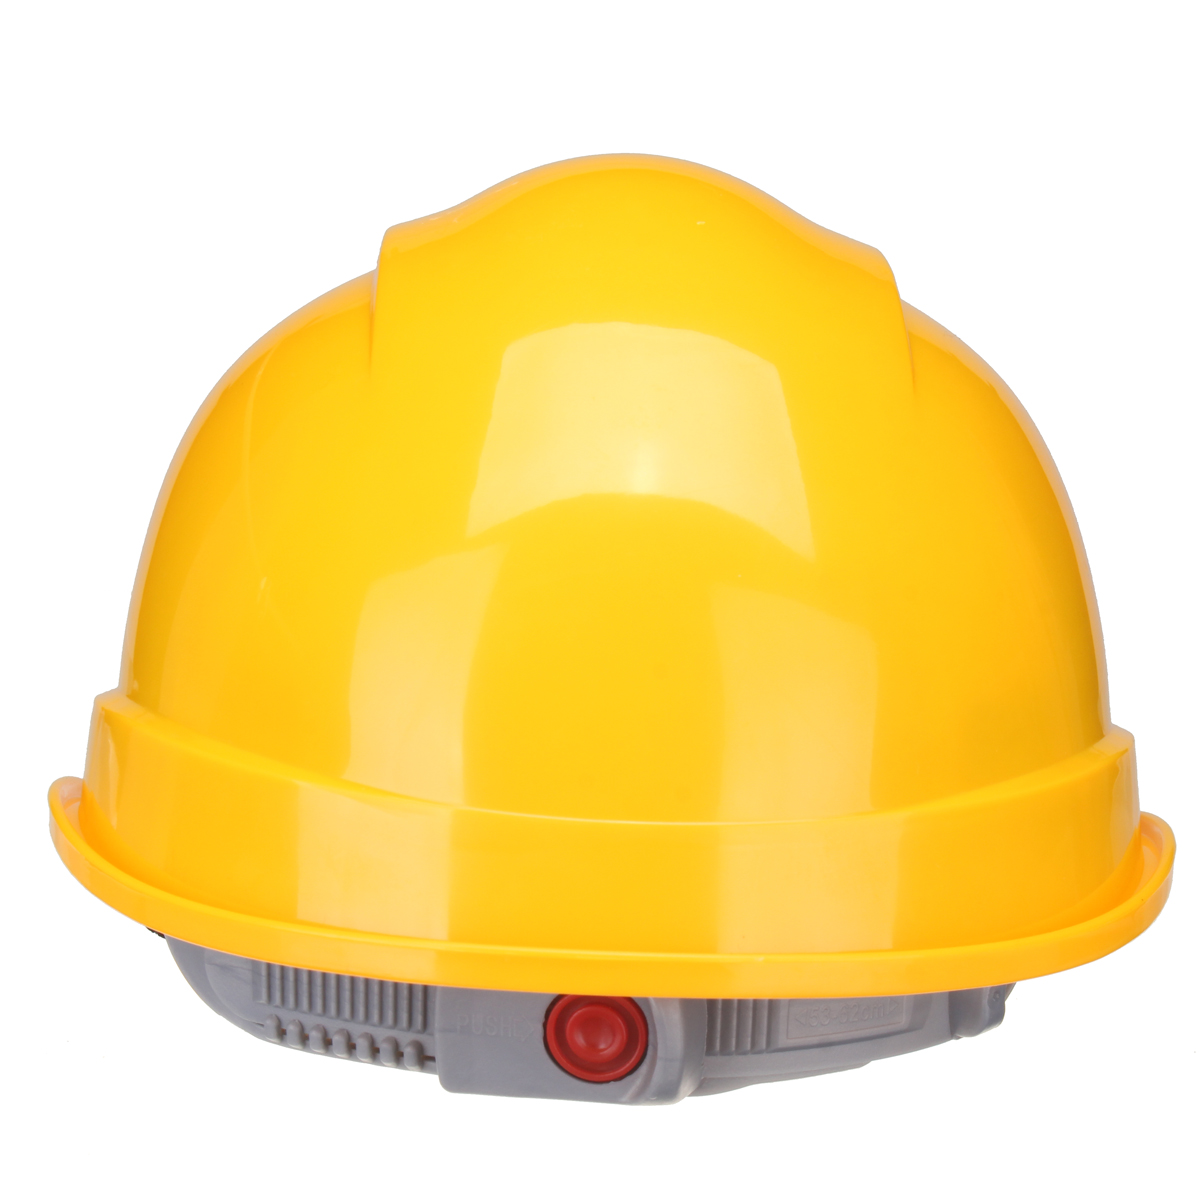 ABS Safety Helmet Breathable Full Brim Hard Hat Cap Construction Protector